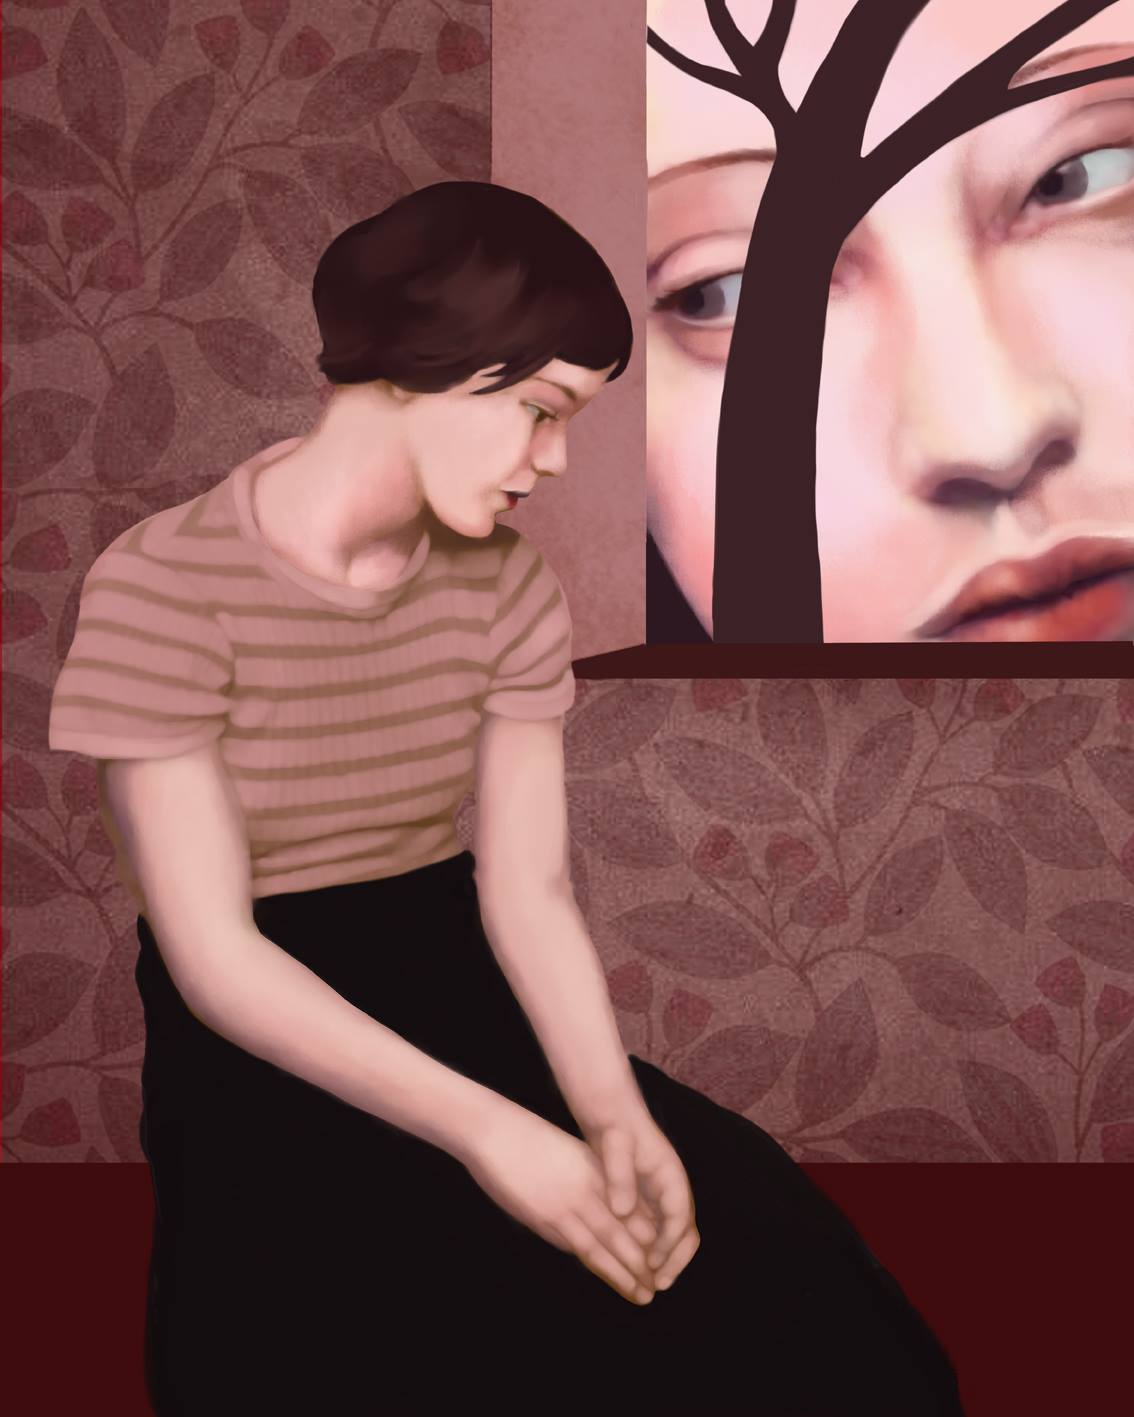 Illustrations by Surrealist Illustrations Daria Petrilli